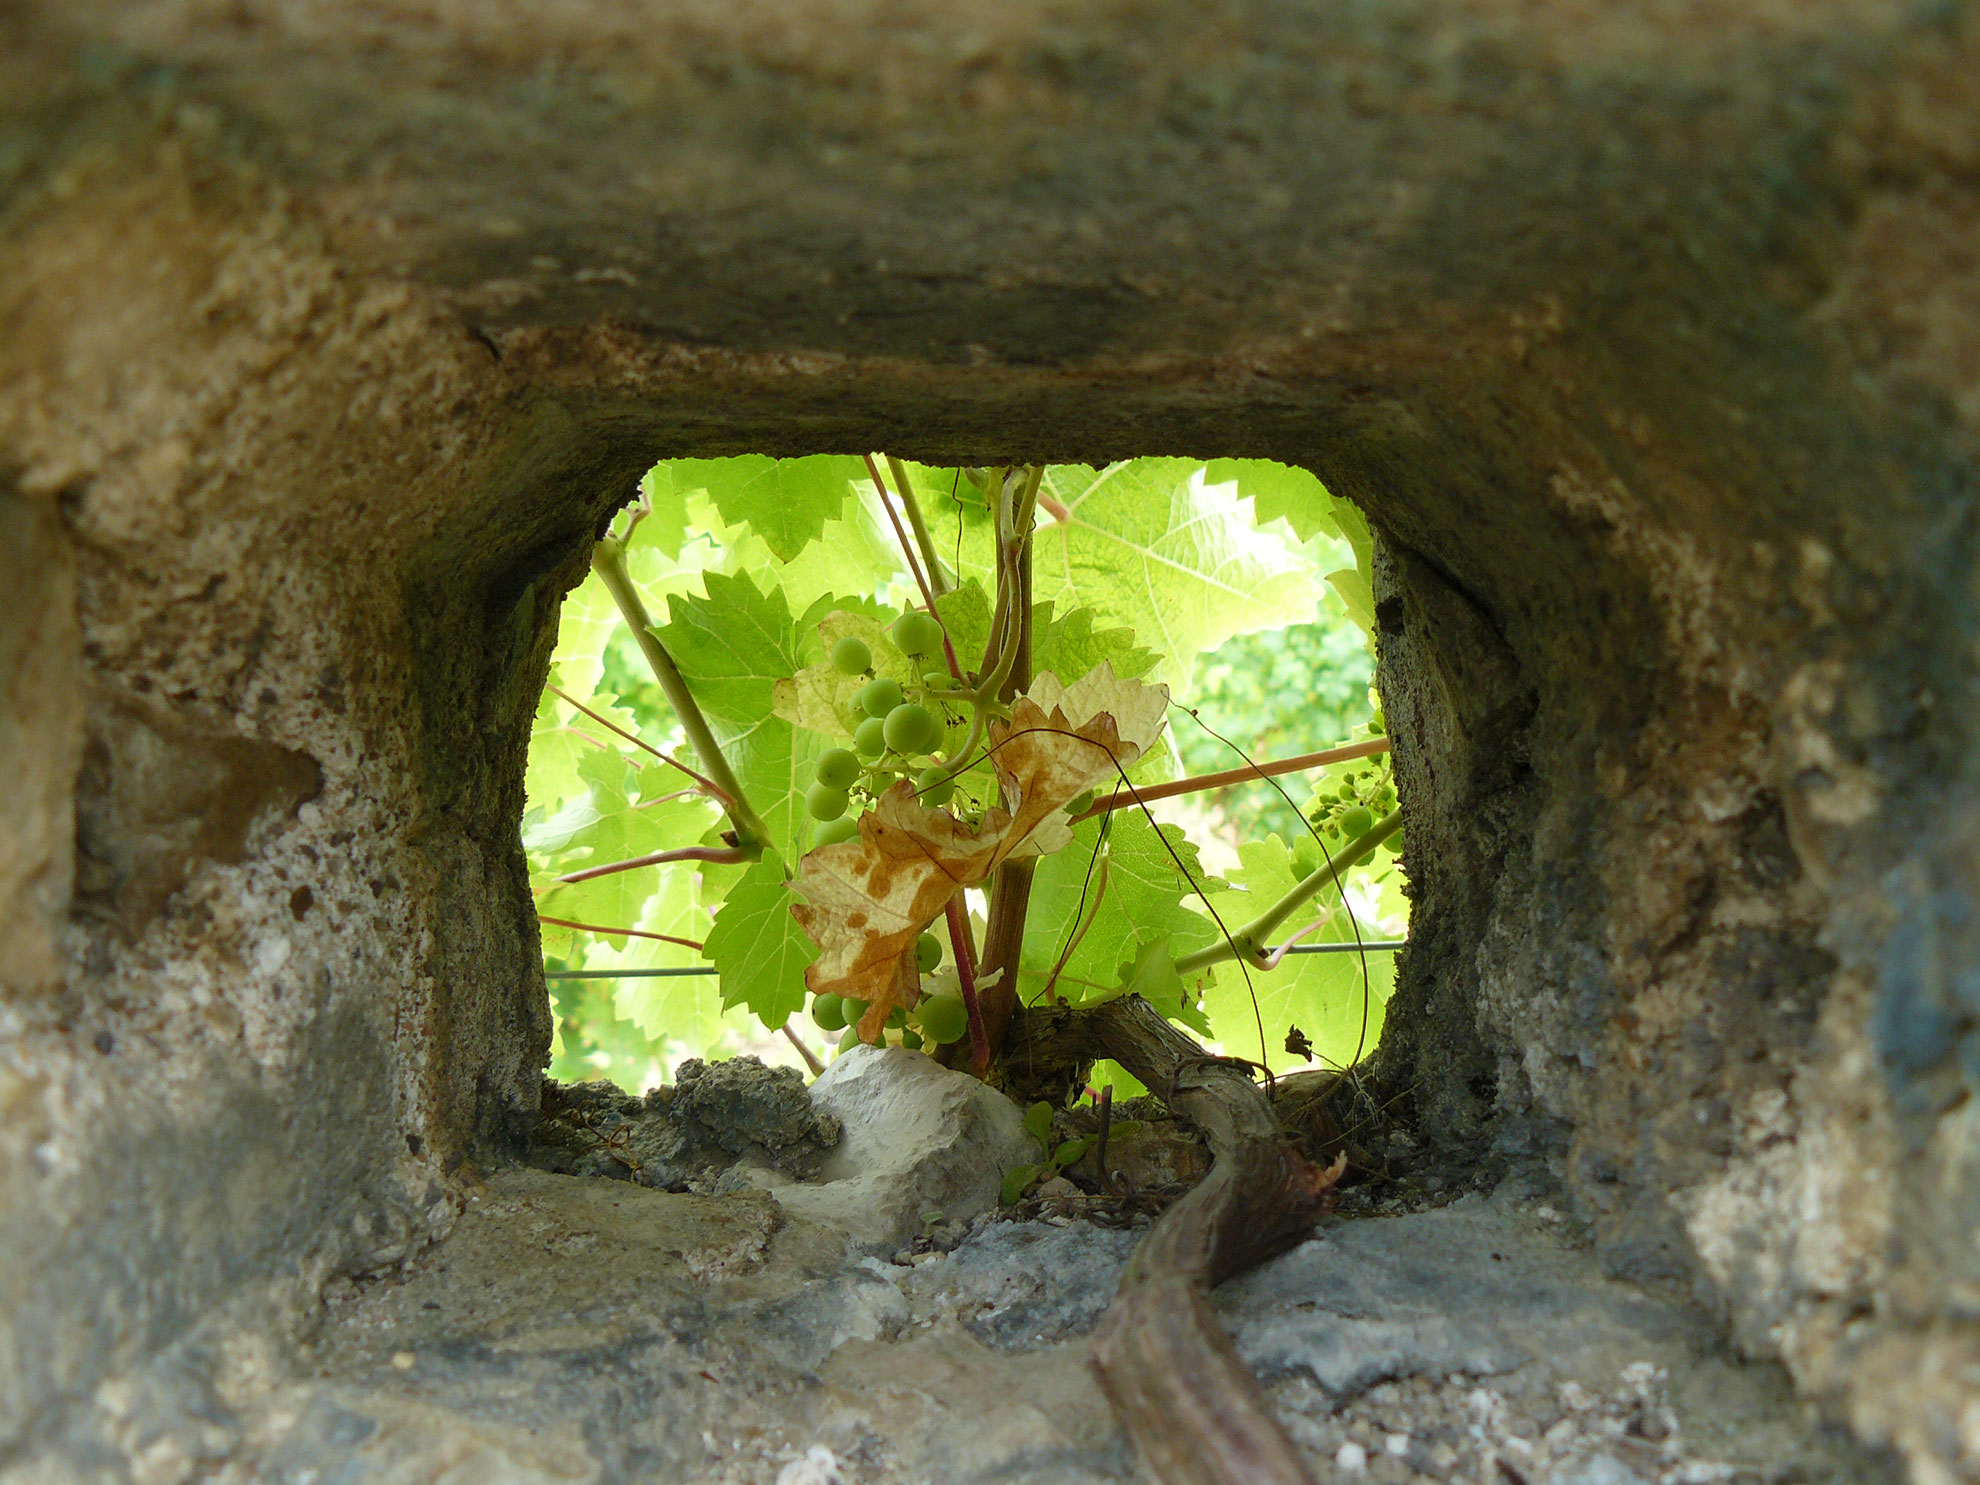 Vines at Antoine Cristal are trained through holes in the old stone walls.